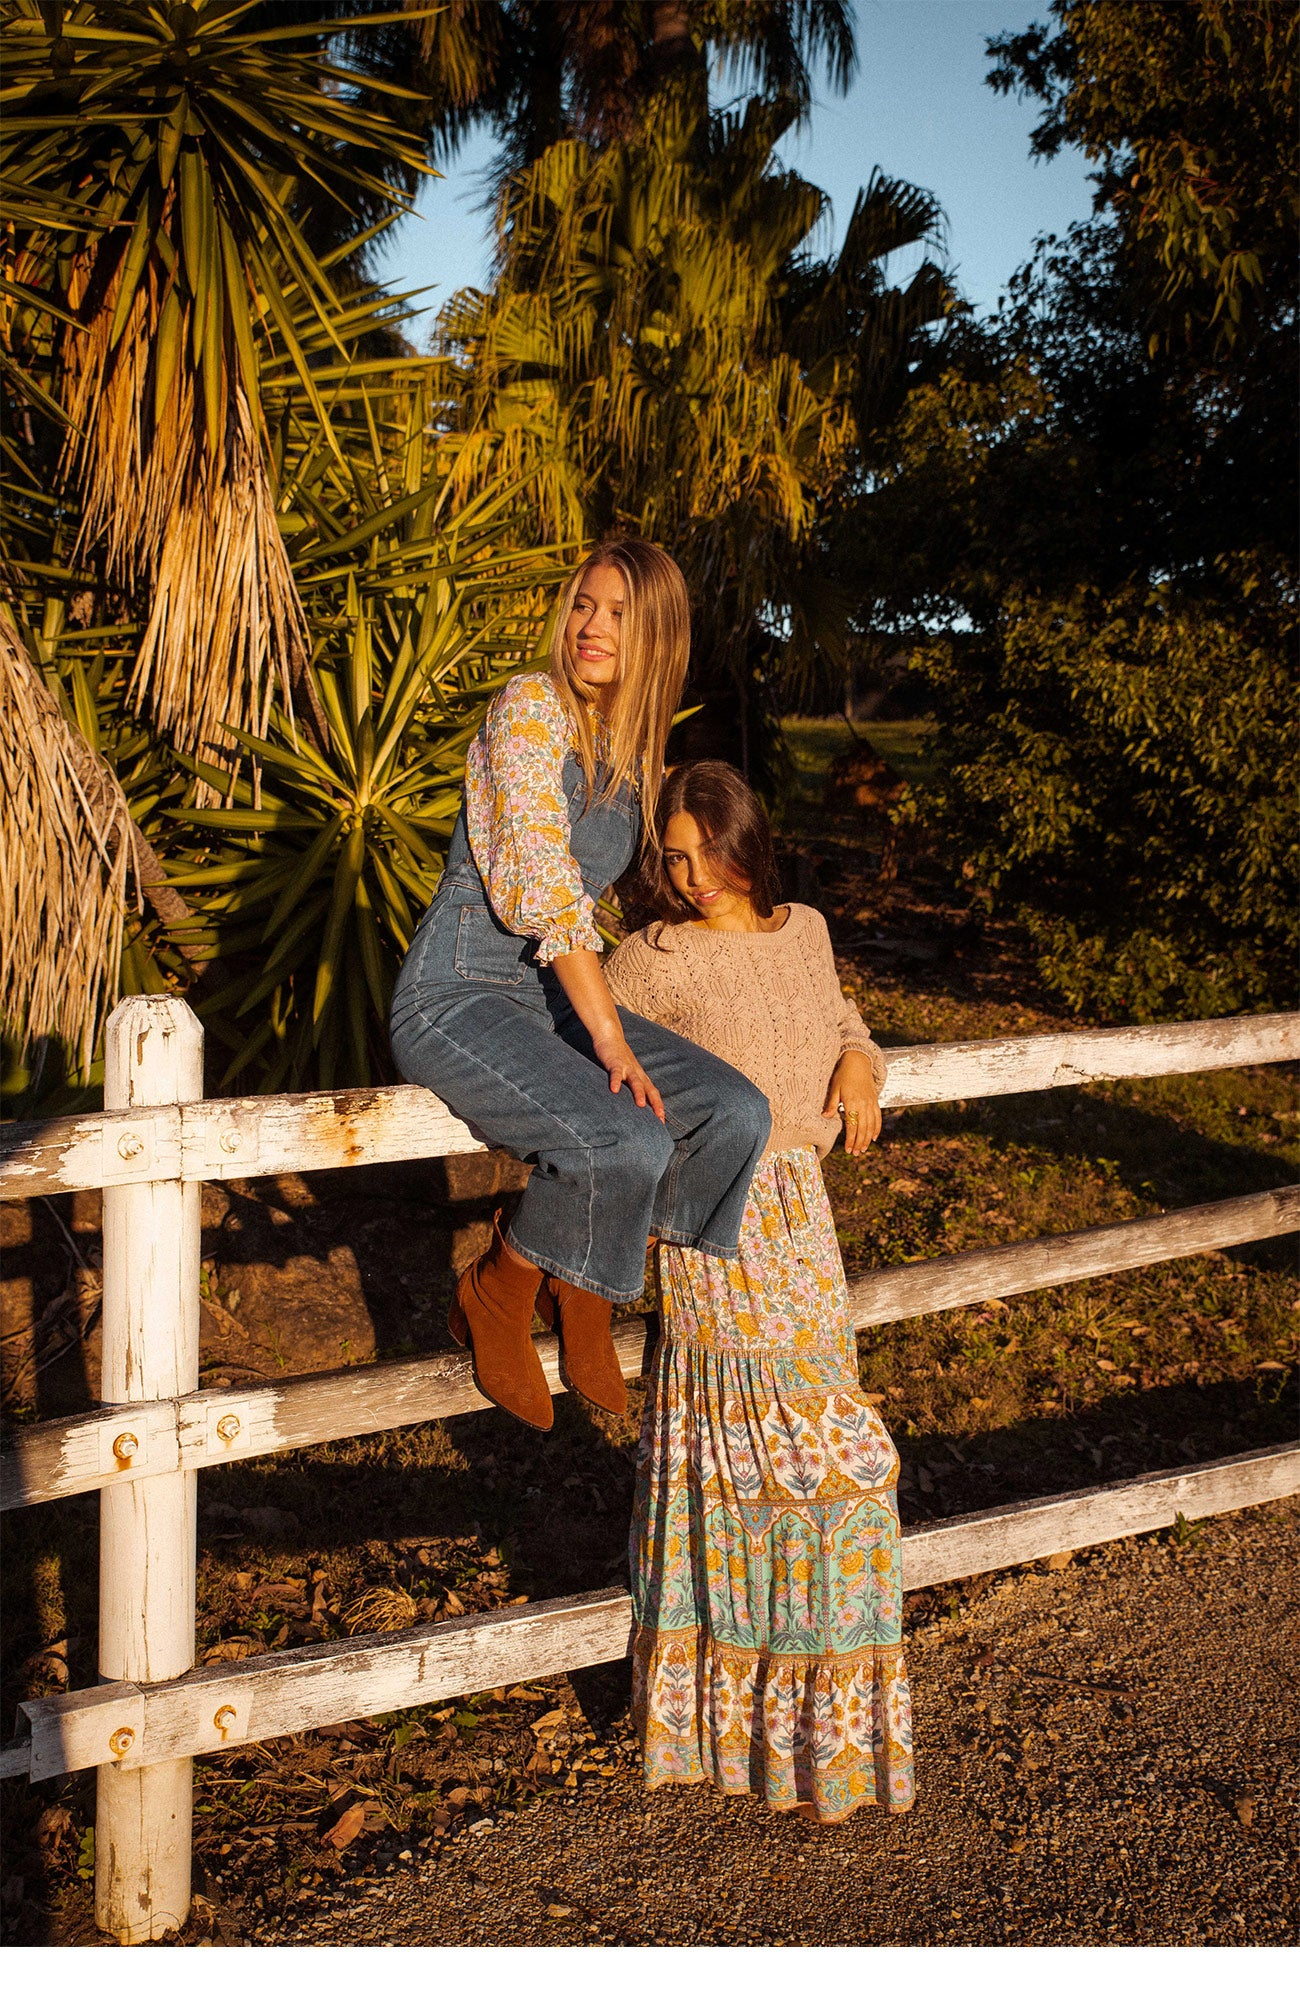 The need for sisterhood discussed on the blog at Arnhem sustainable clothing